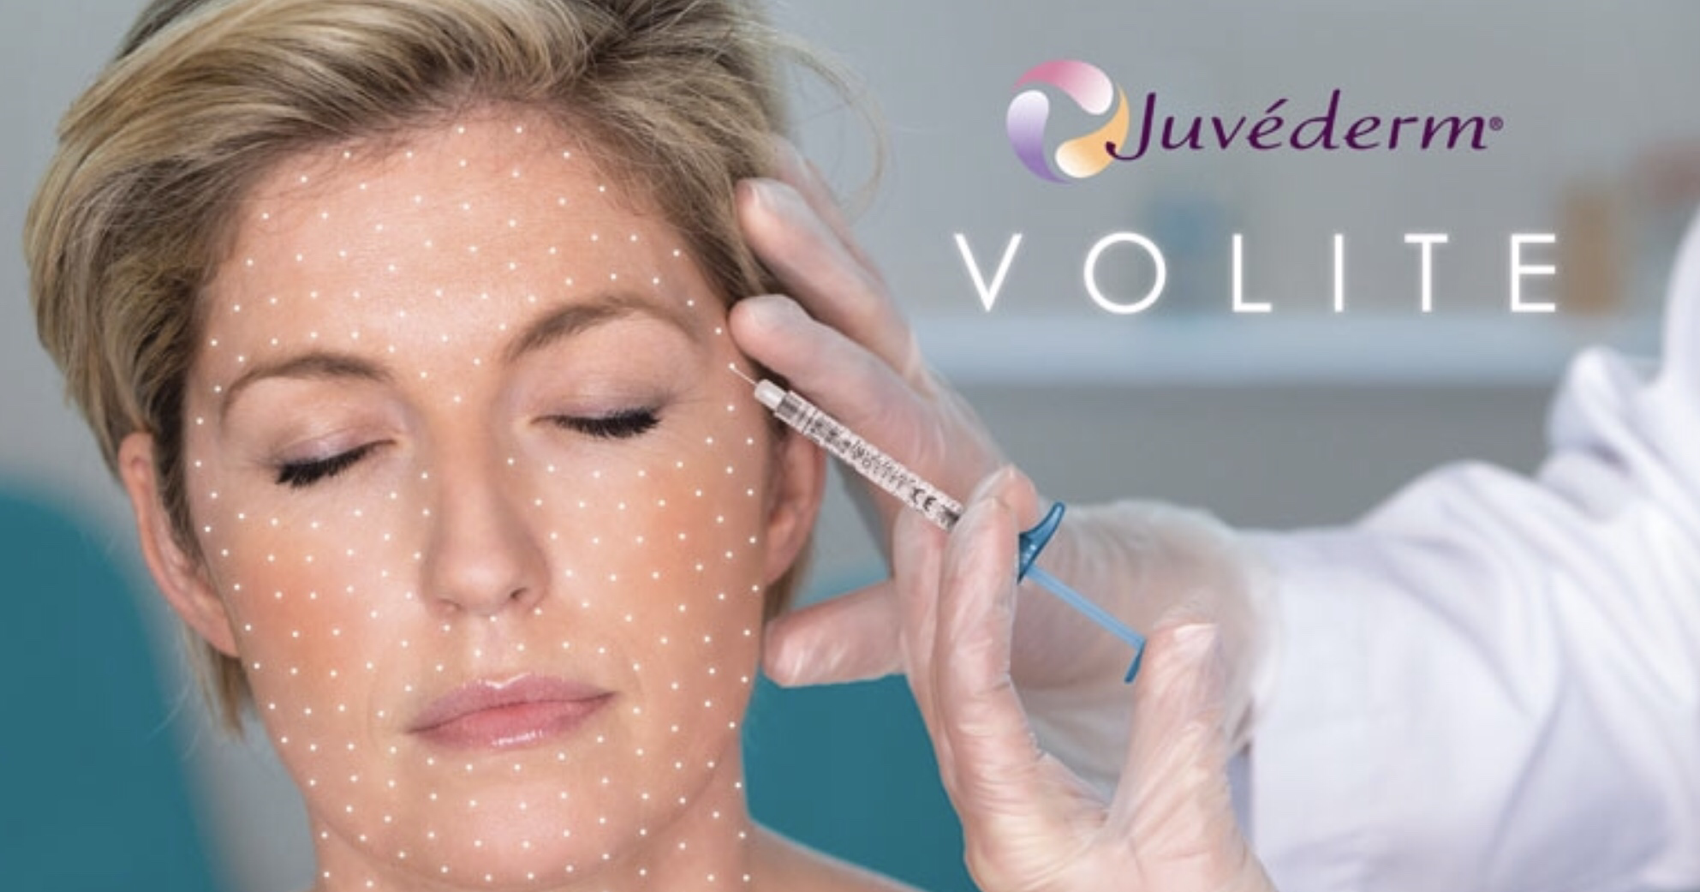 Juvederm Volite Toronto Injectable Moisturizer. Hyaluronic Acid is delivered right under the skin for lasting effects